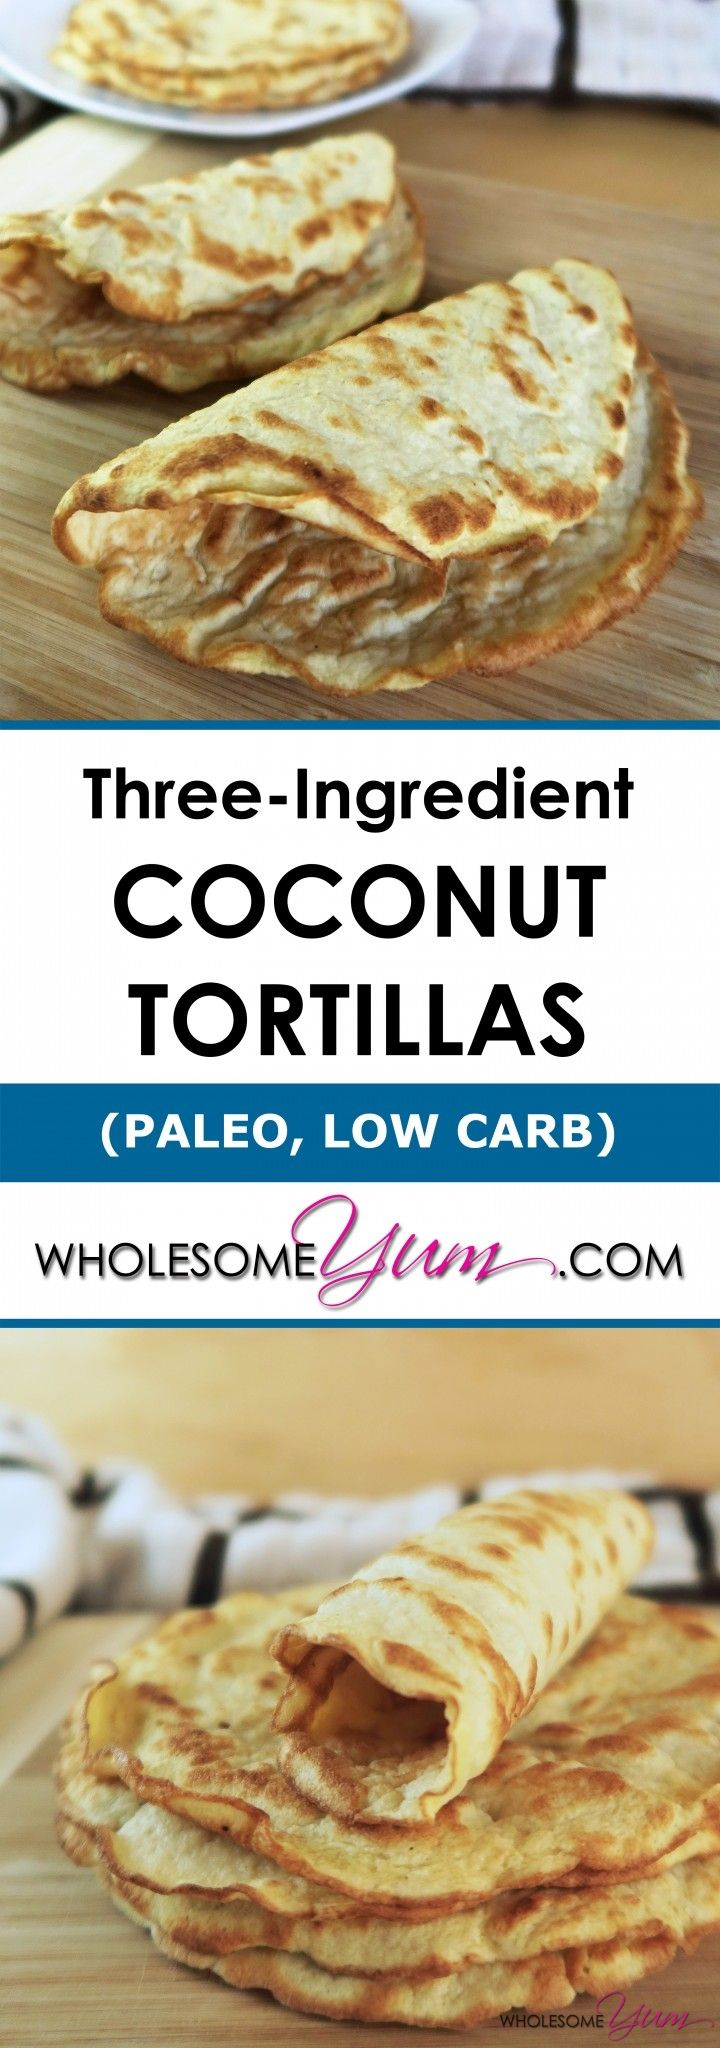 3-Ingredient Coconut Tortillas (Paleo, Low Carb)   Wholesome Yum - Natural, gluten-free, low carb recipes